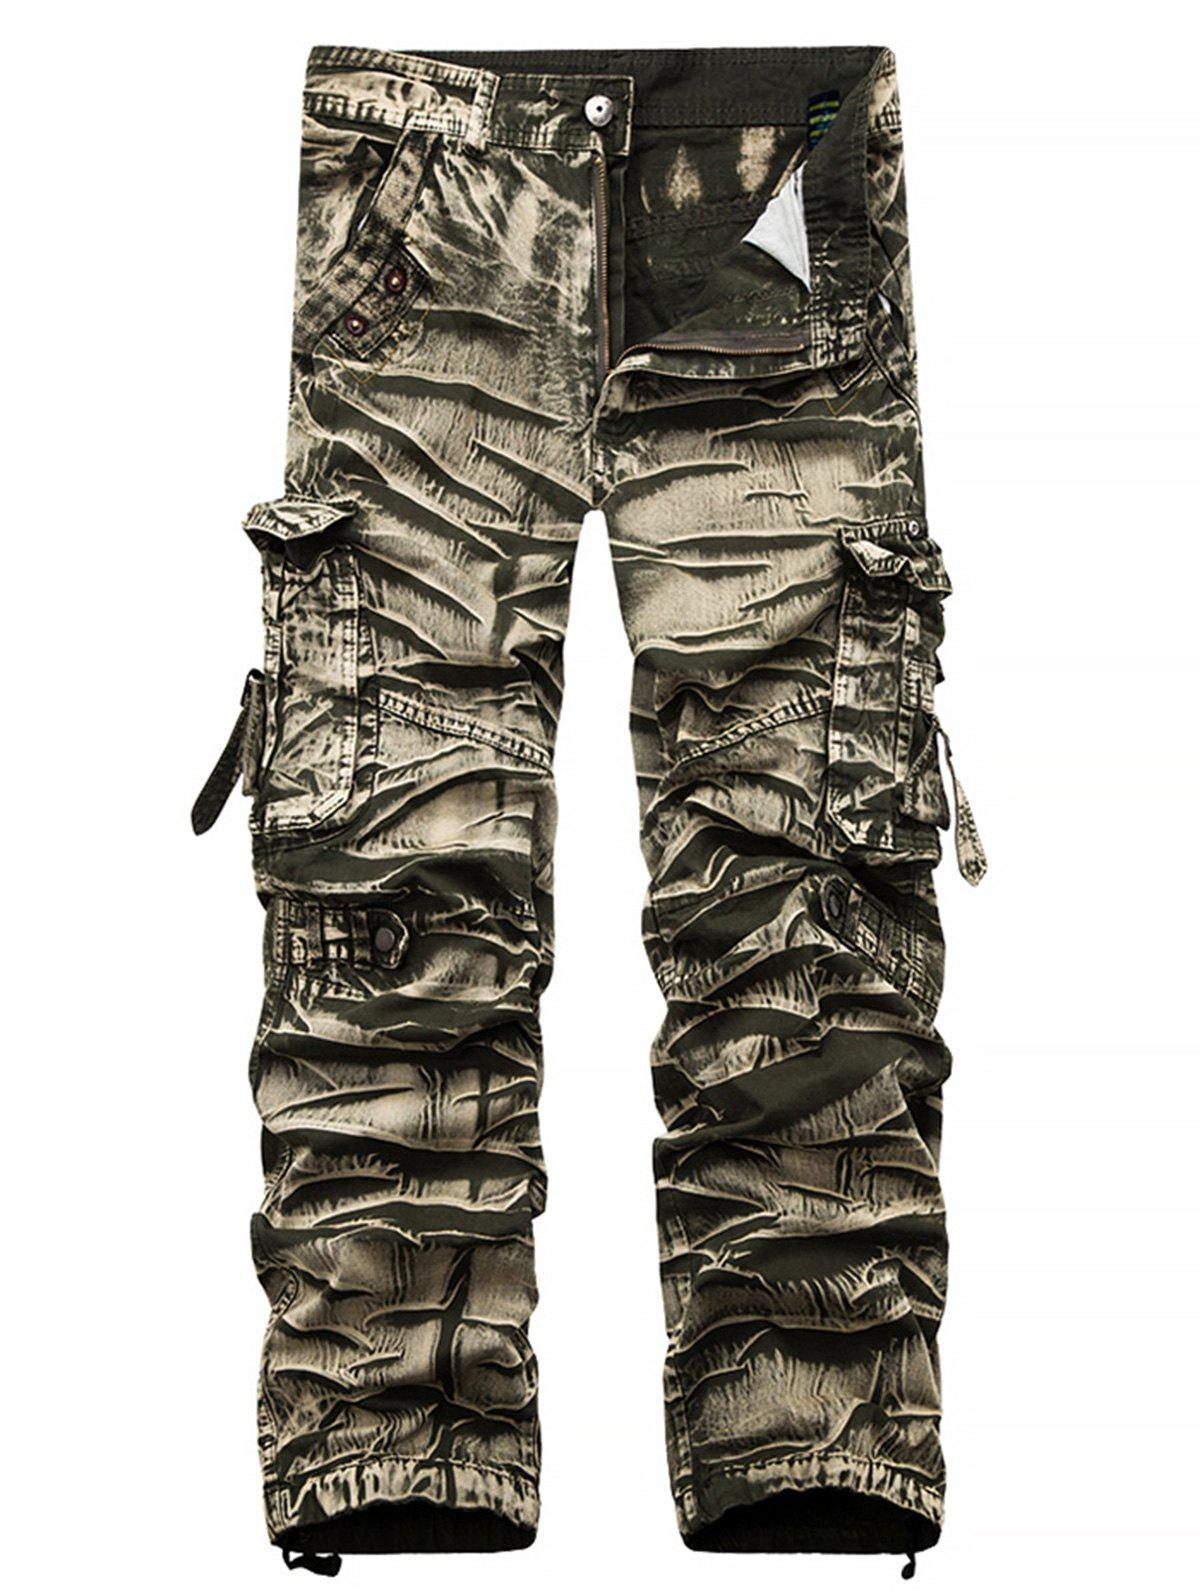 Accordion Pleat Camouflage Cargo Pants - KHAKI 34